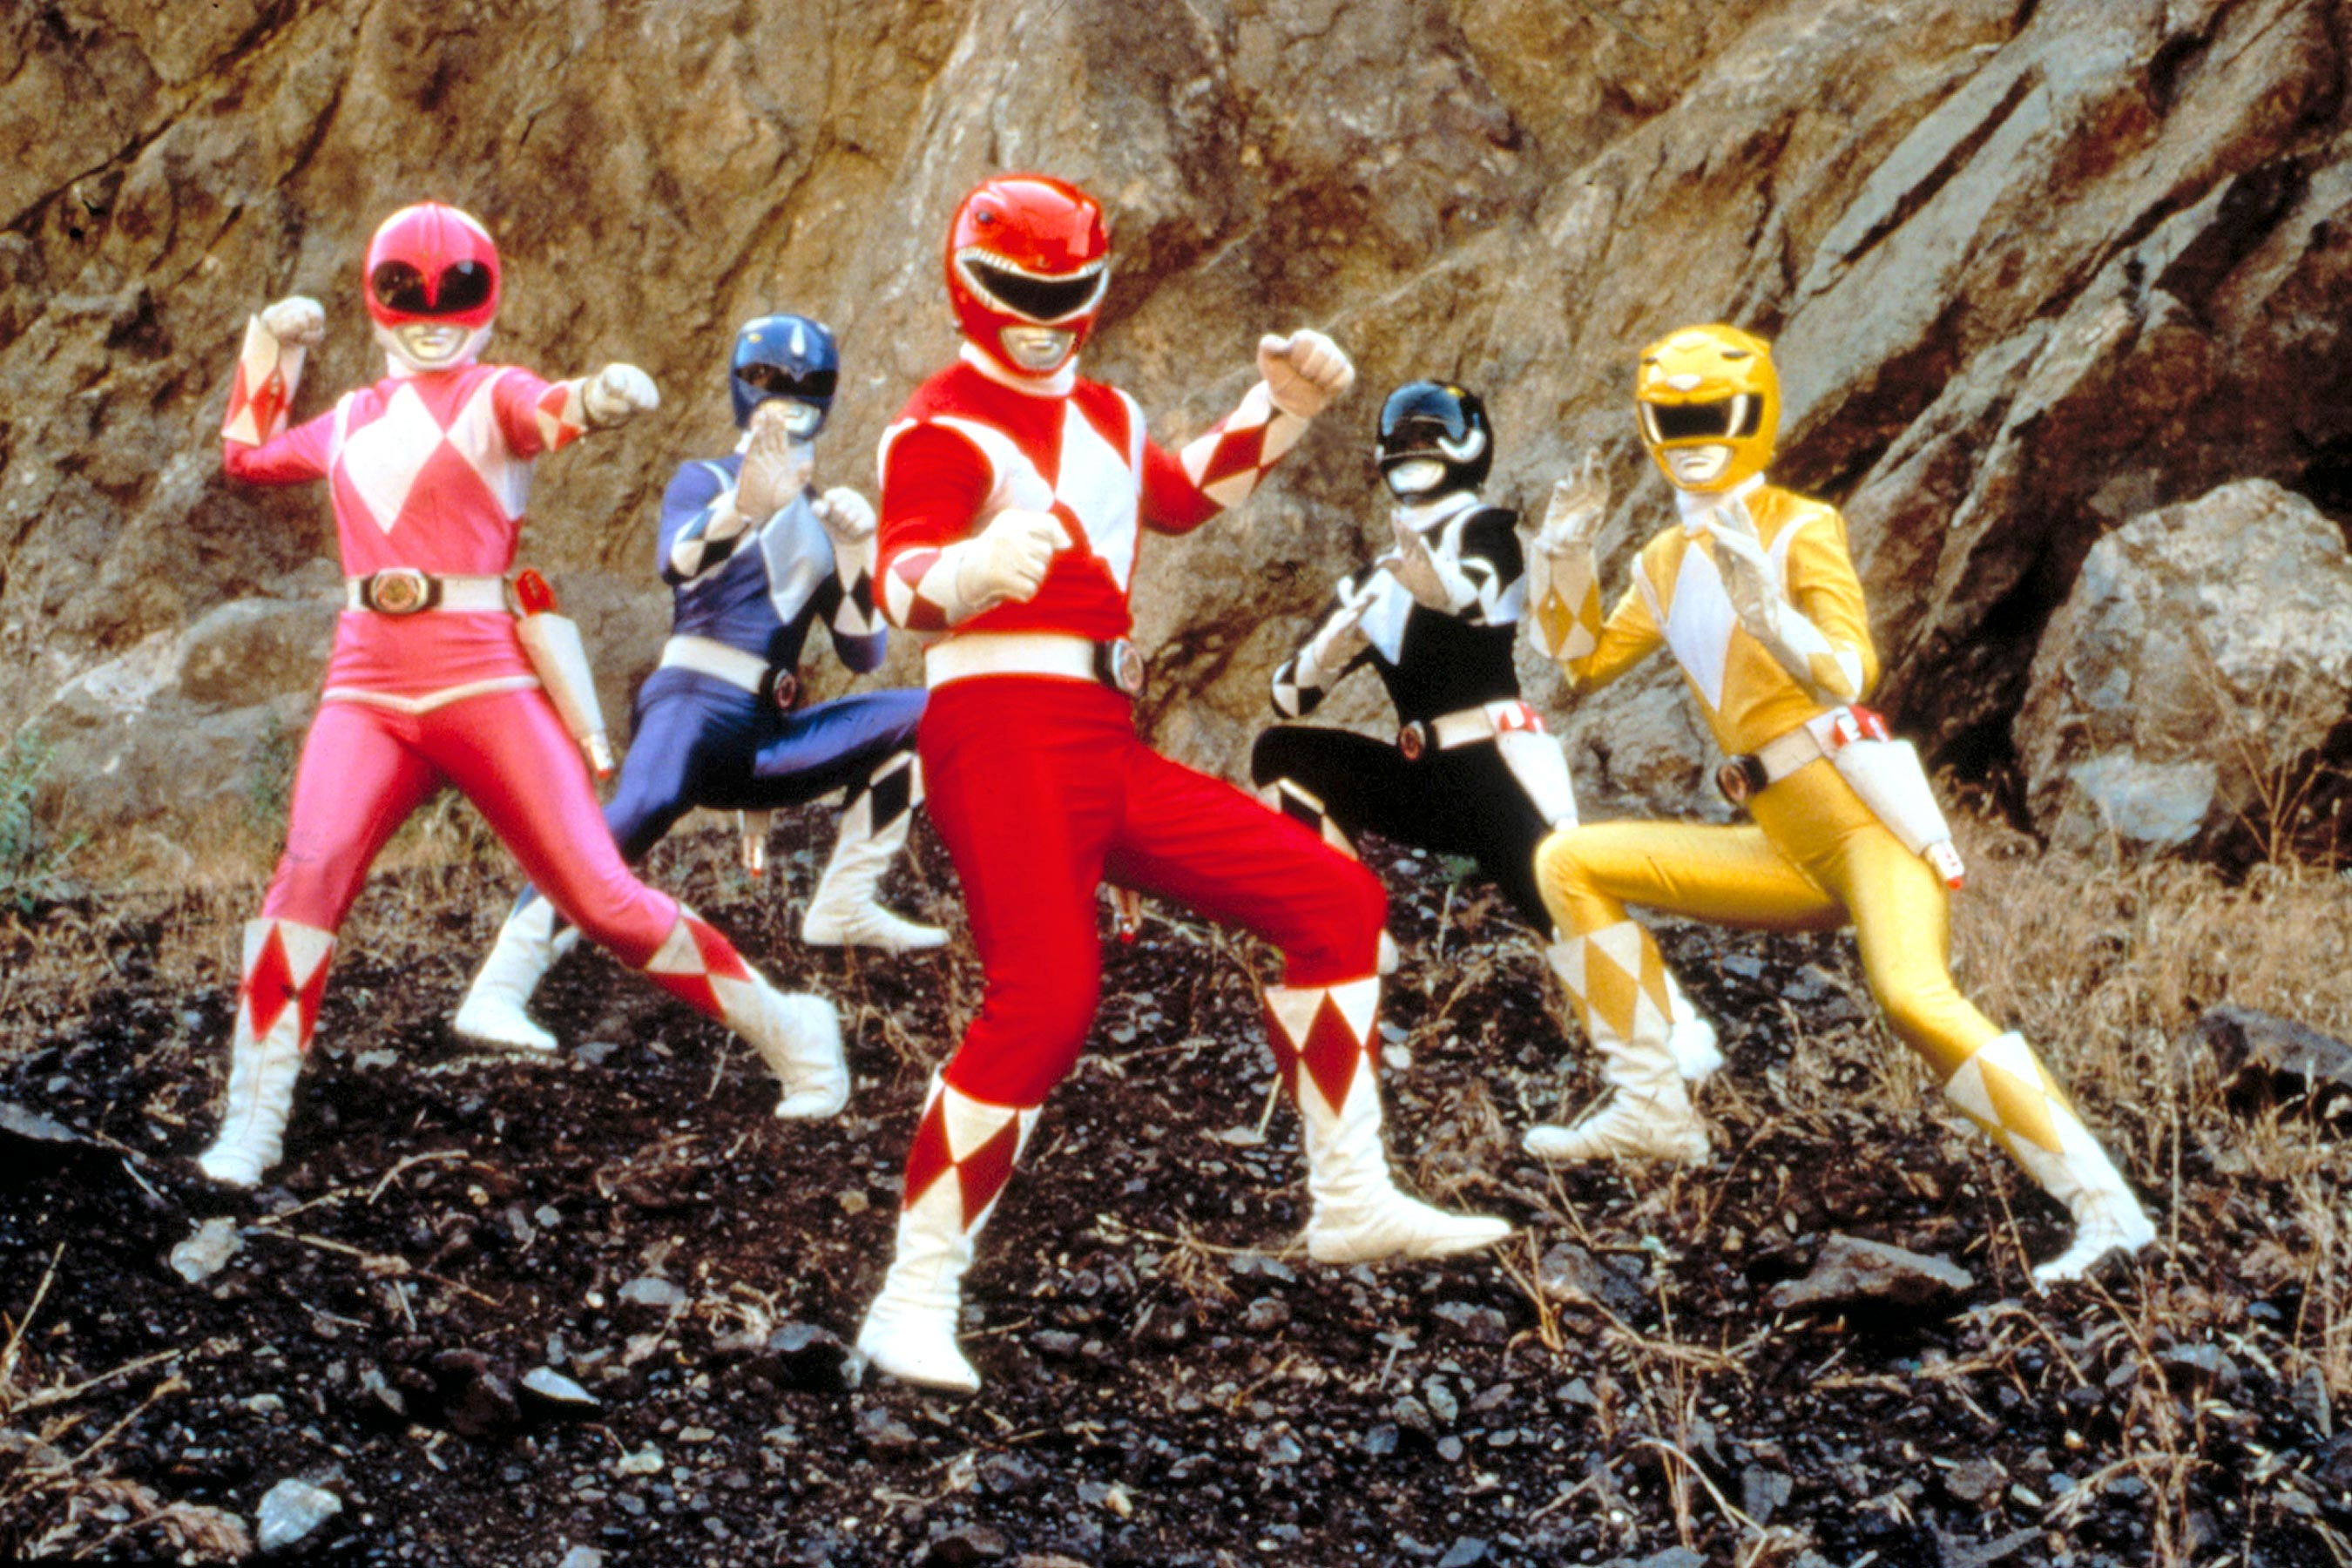 'Power Rangers' reboot in works with 'The End of the F***ing World' creator